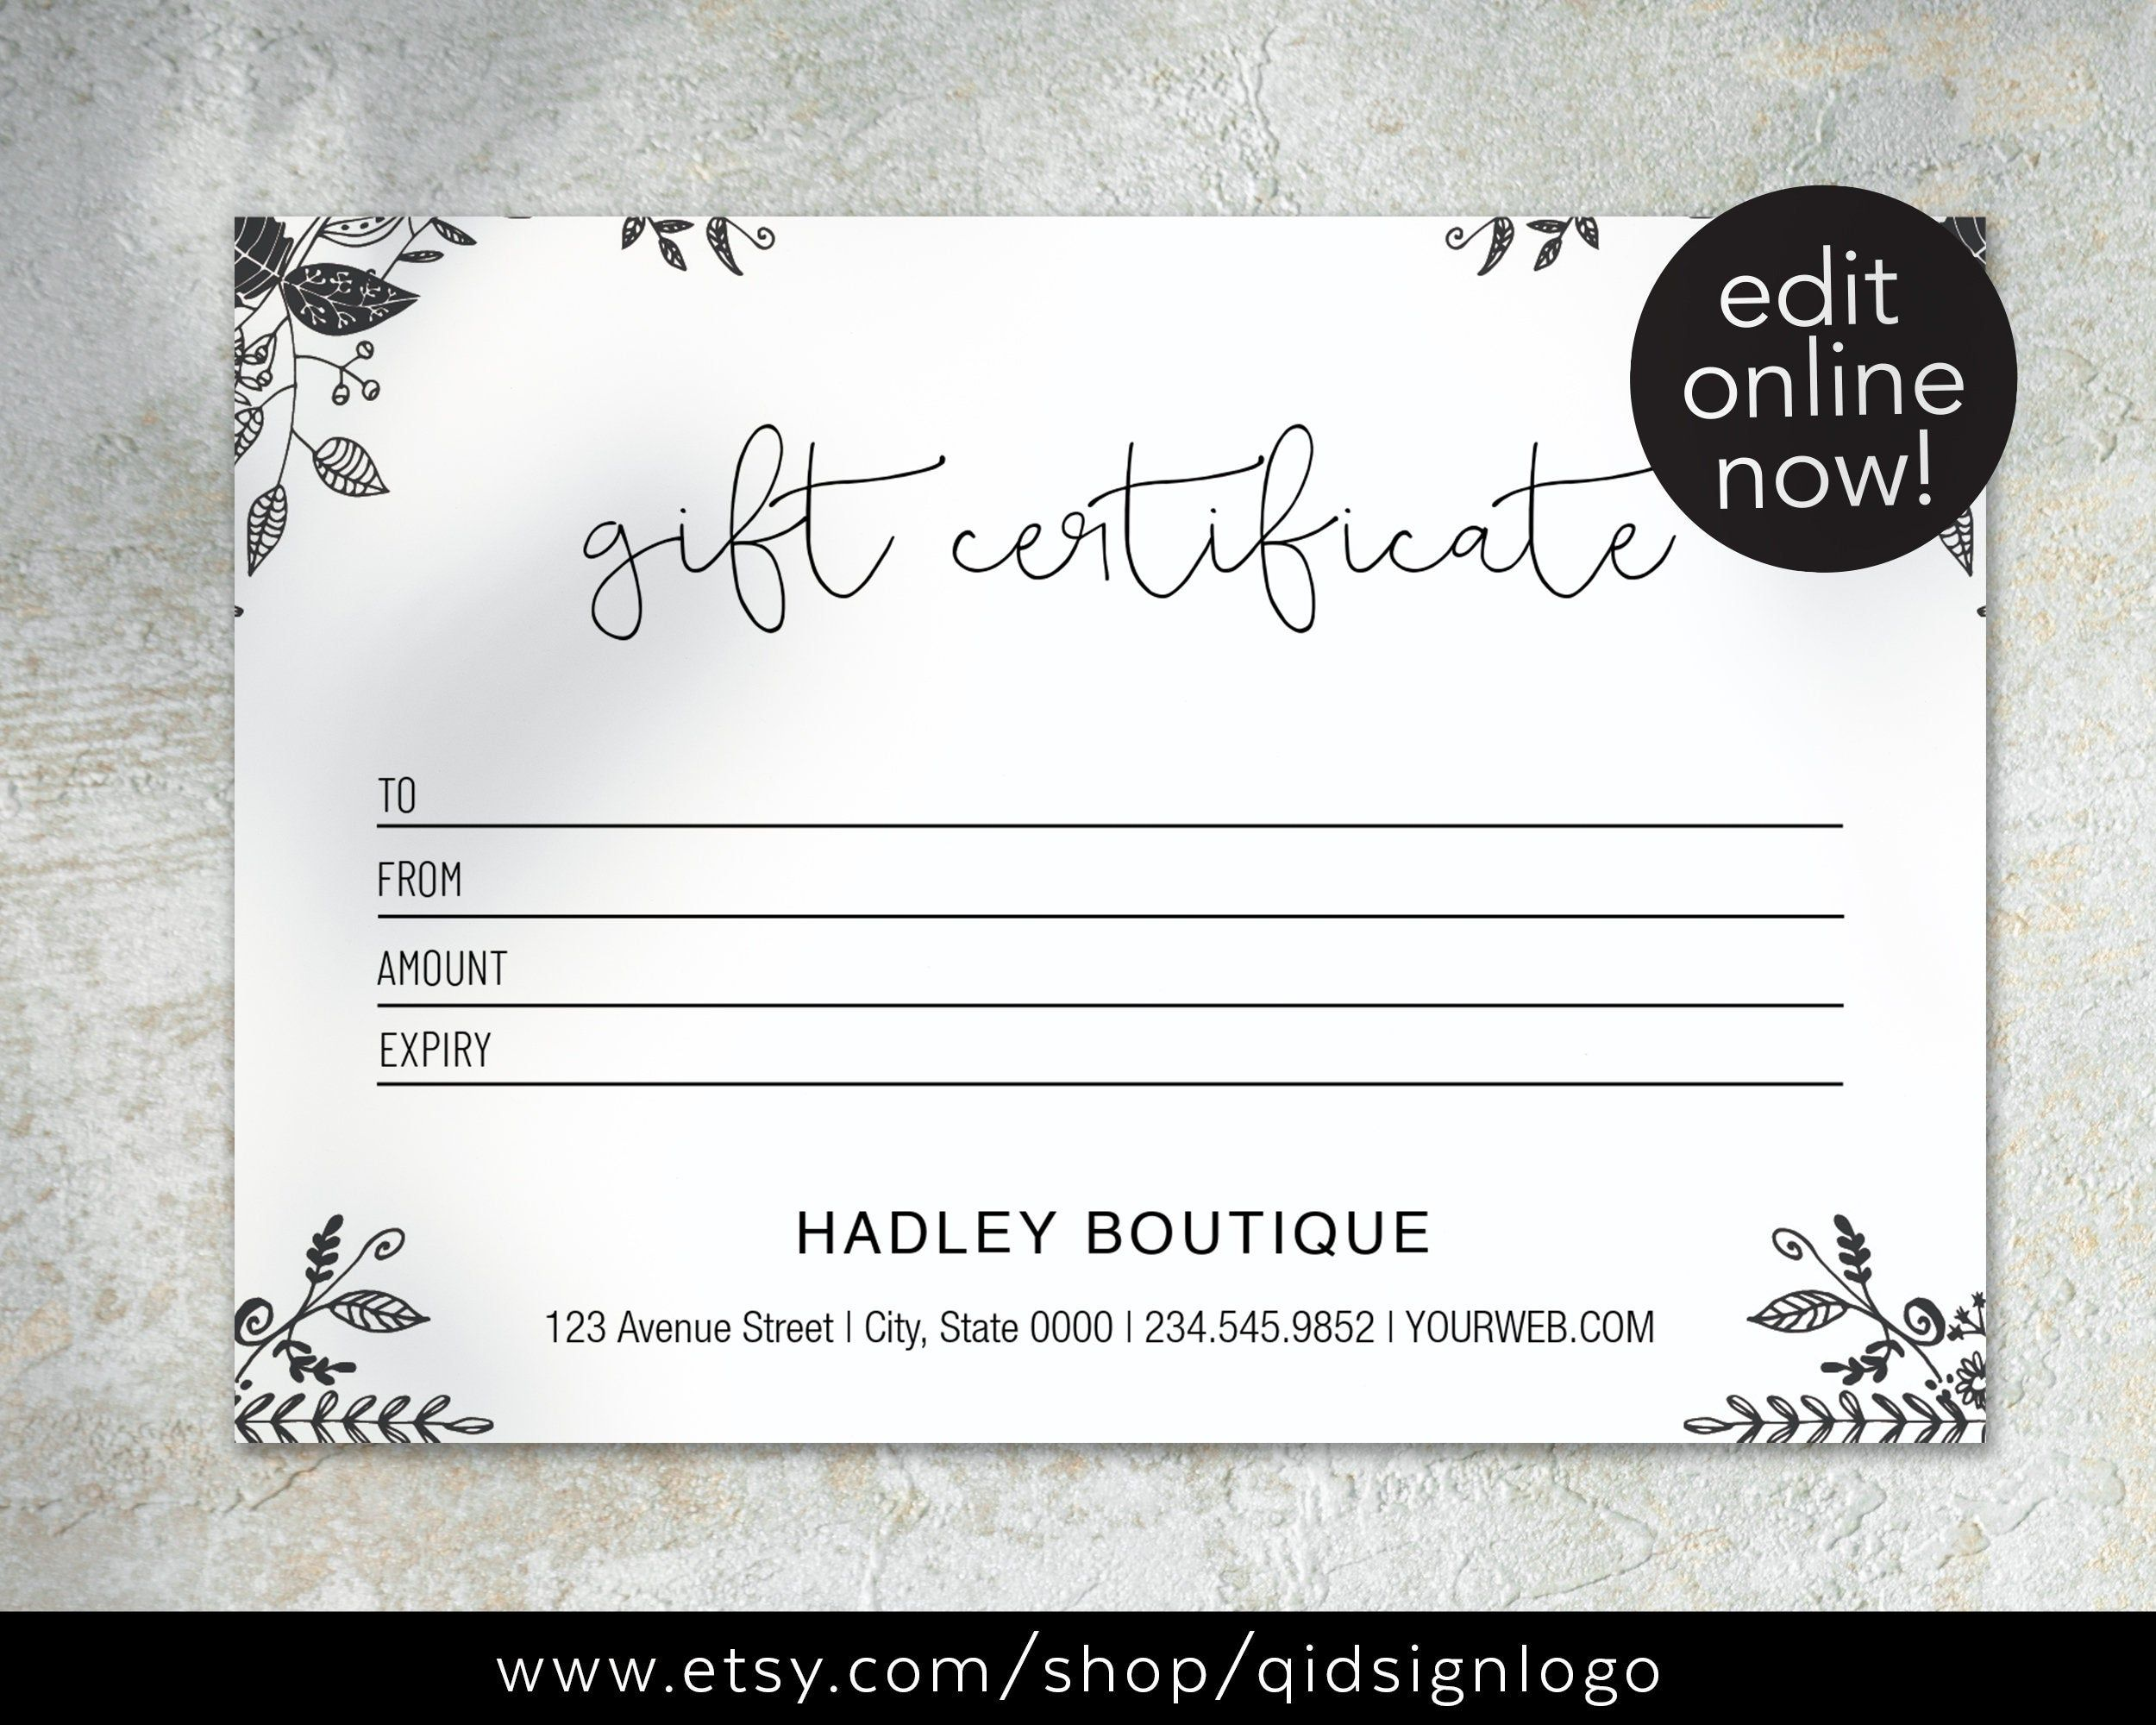 Gift Card Template Editable Gift Card Printable Gift Card Gift Certificates Diy Voucher Printable Gift Cards Printable Gift Certificate Gift Card Template